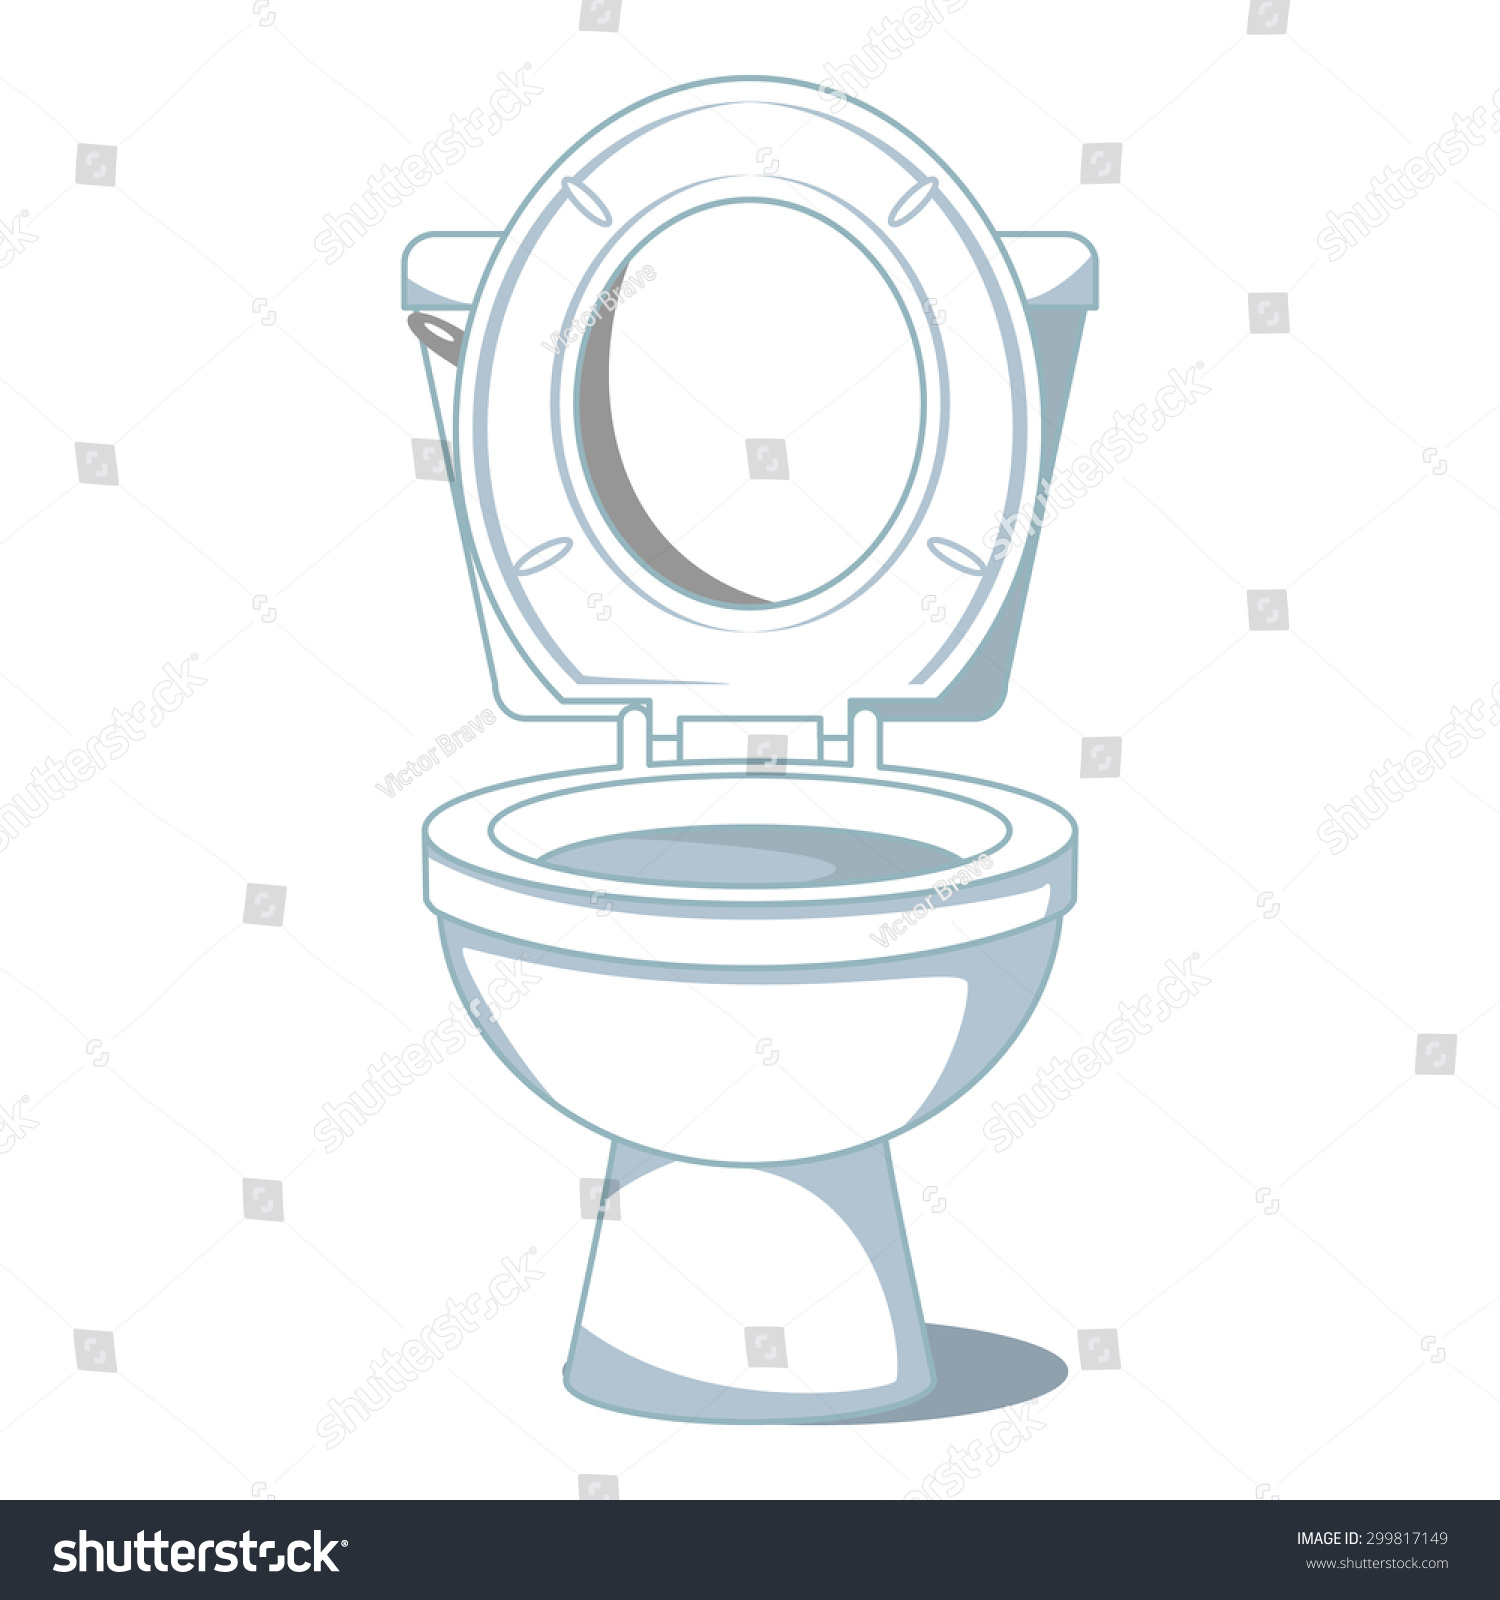 Toilet, Vector Illustration